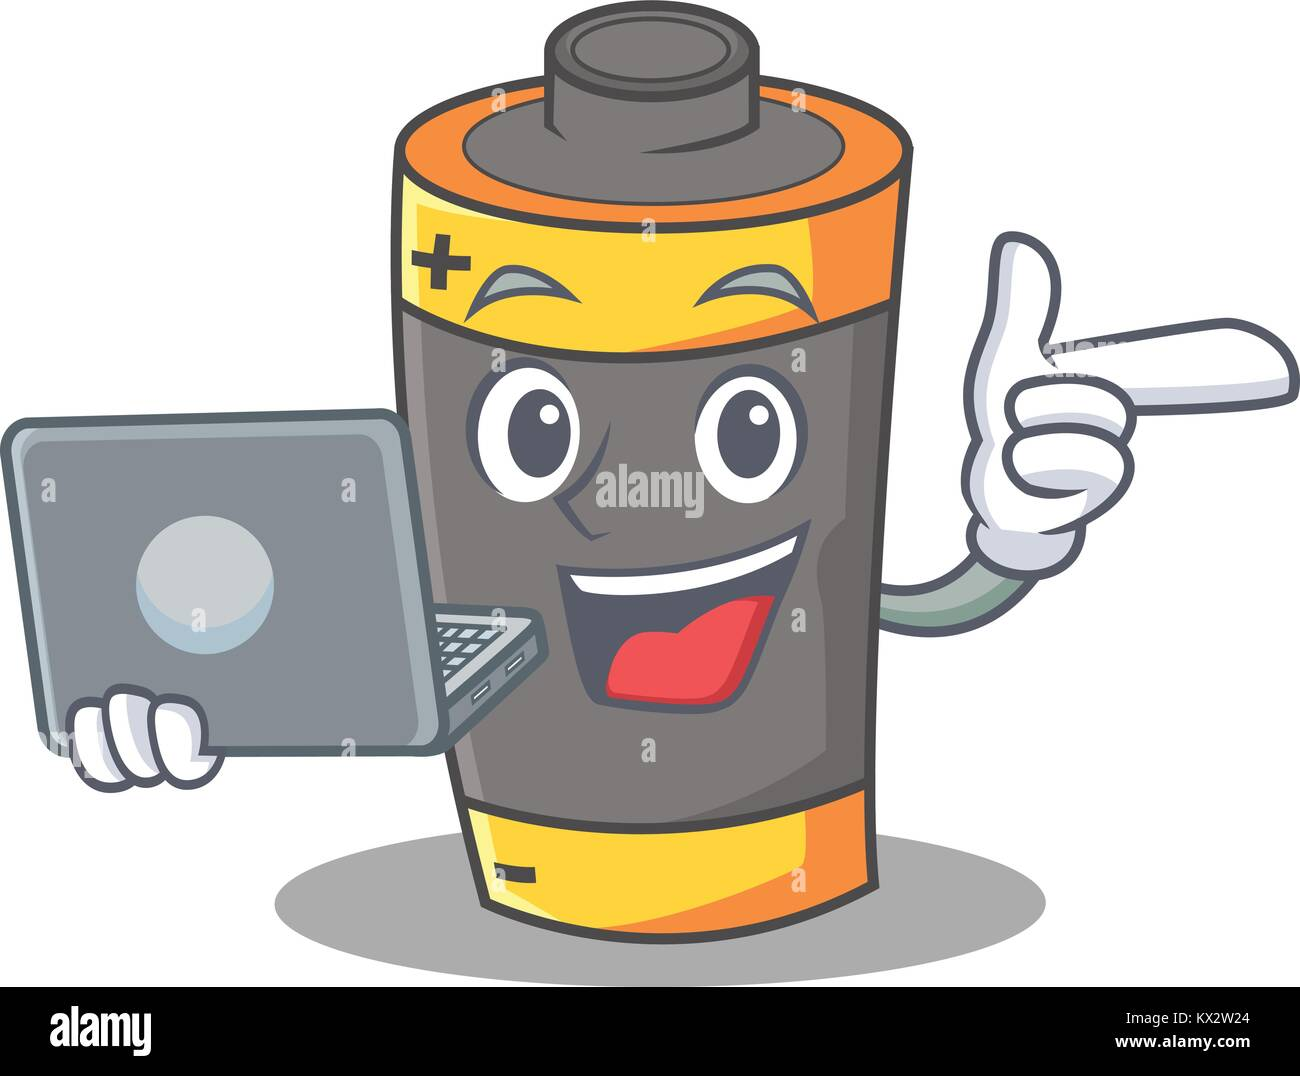 With laptop battery character cartoon style - Stock Image